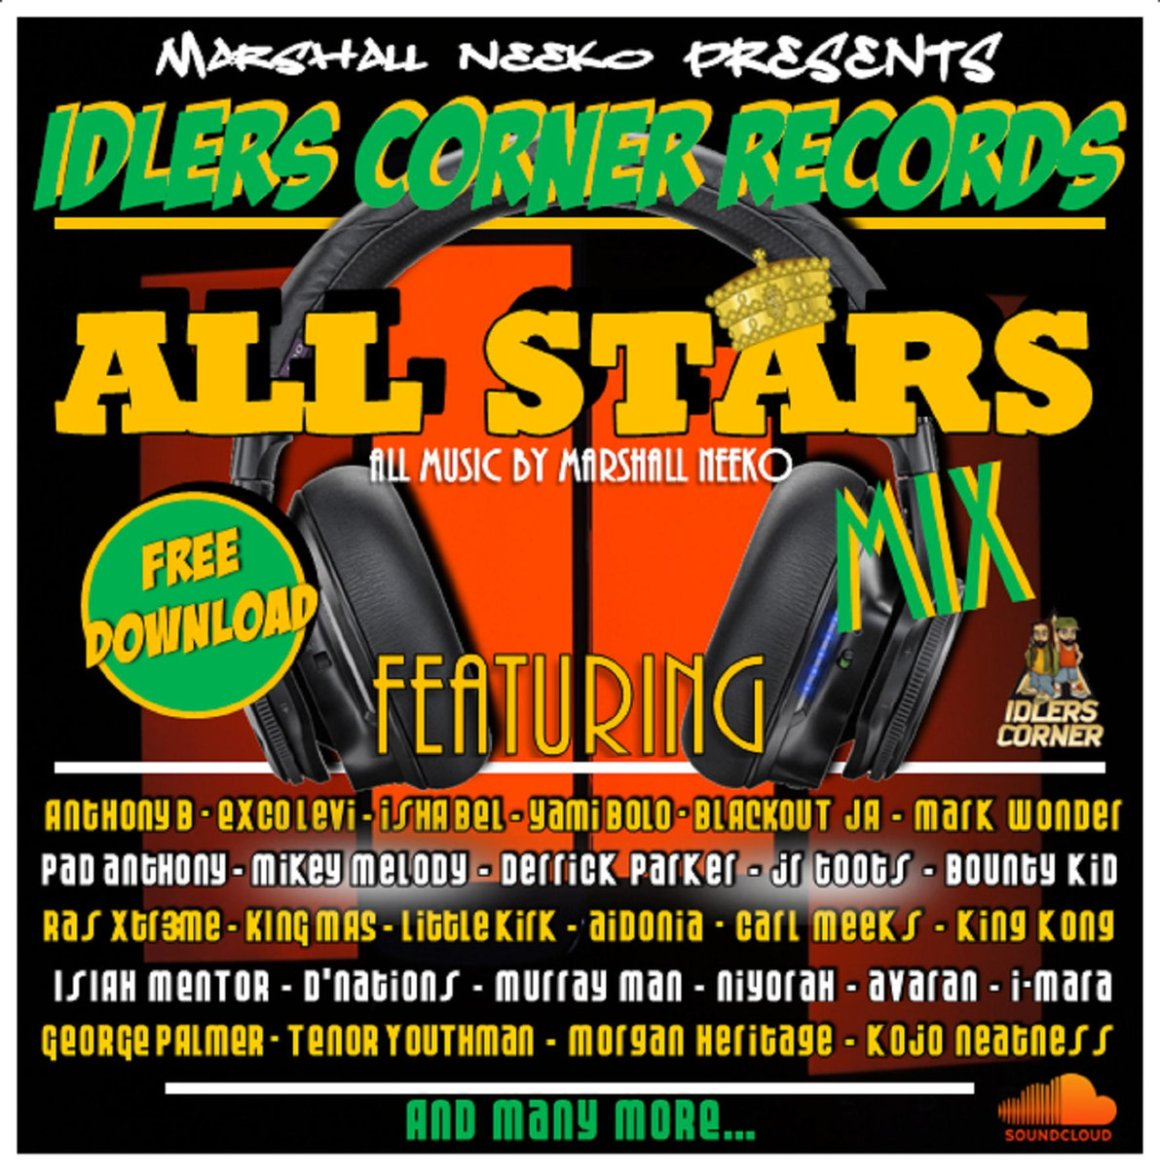 Idlers Corner Records All Stars Mix (FREE DOWNLOAD)